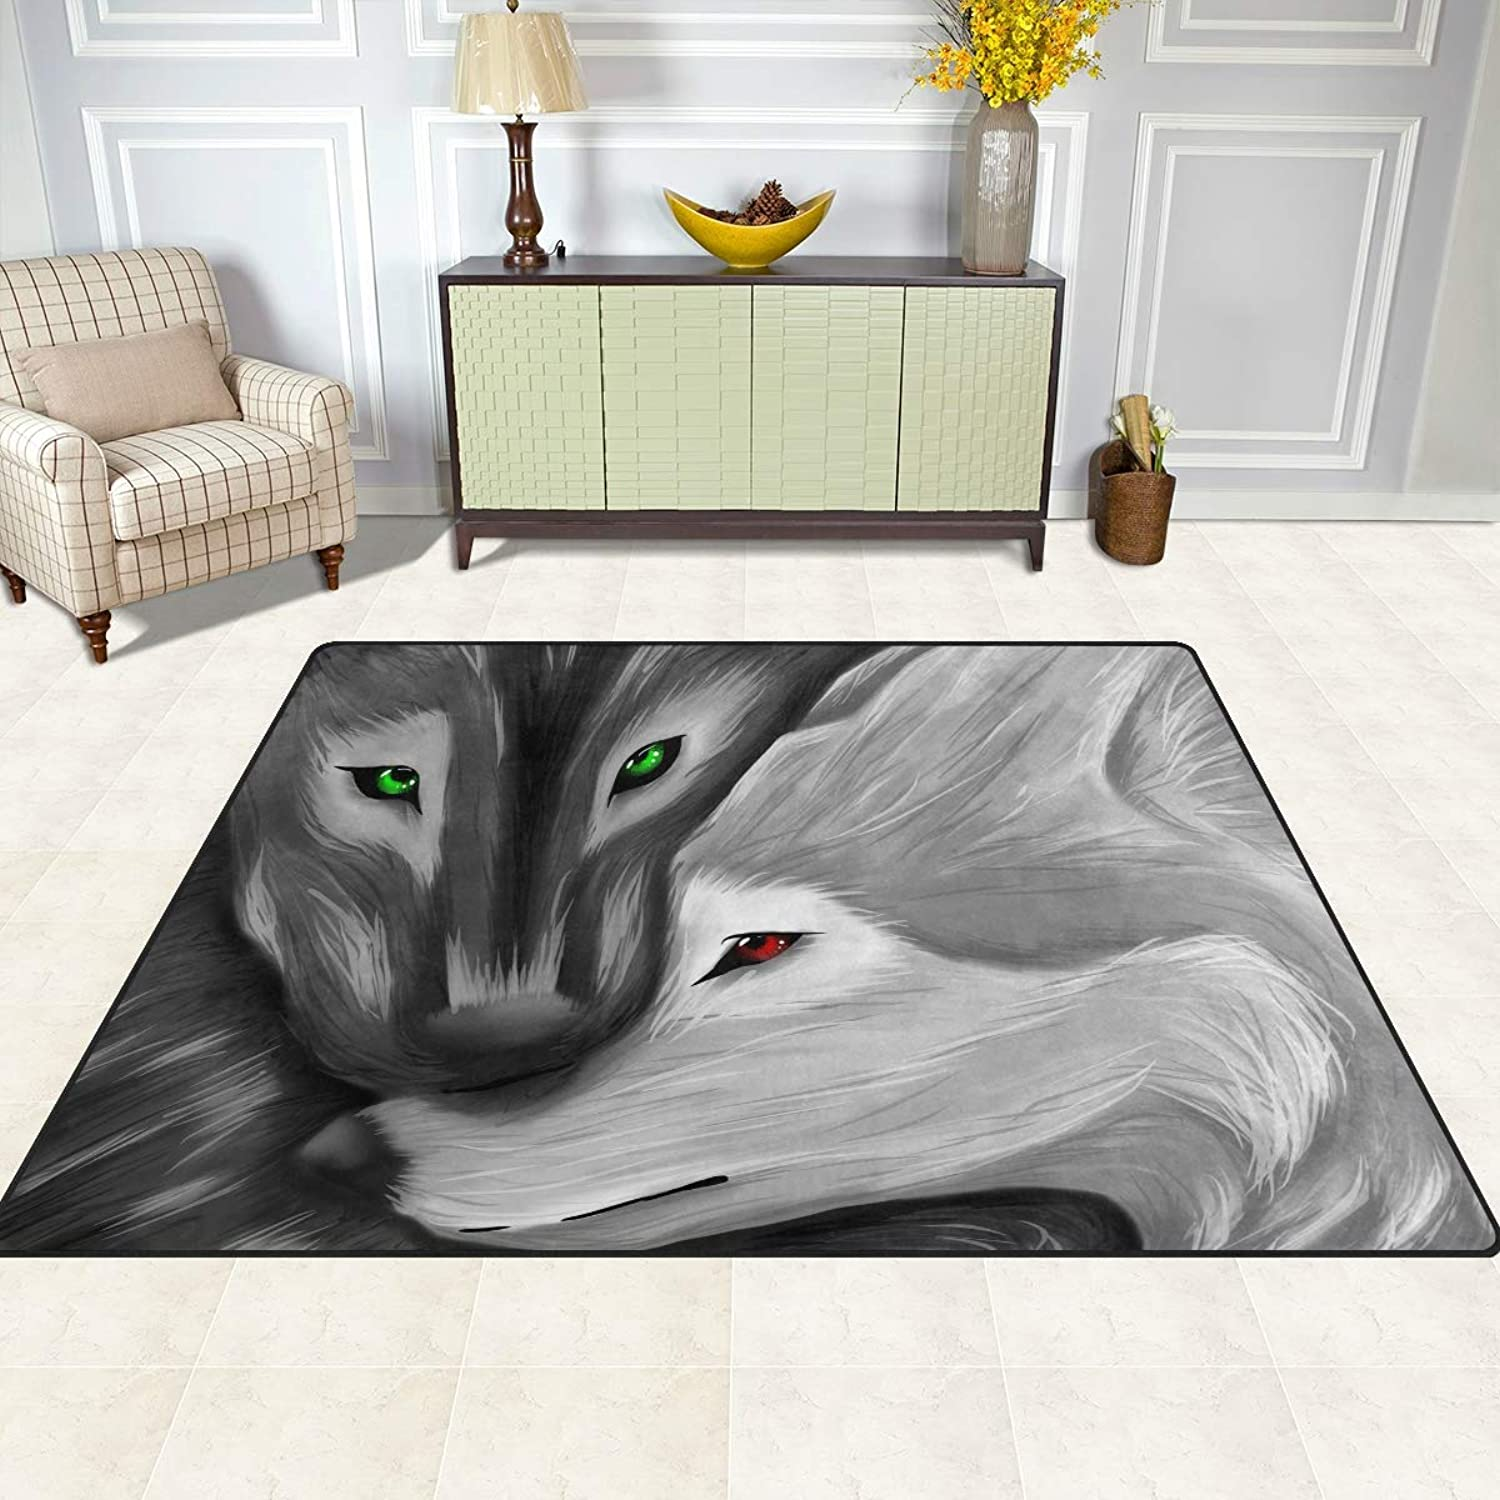 FAJRO Black and White Wolves Rugs for entryway Doormat Area Rug Multipattern Door Mat shoes Scraper Home Dec Anti-Slip Indoor Outdoor